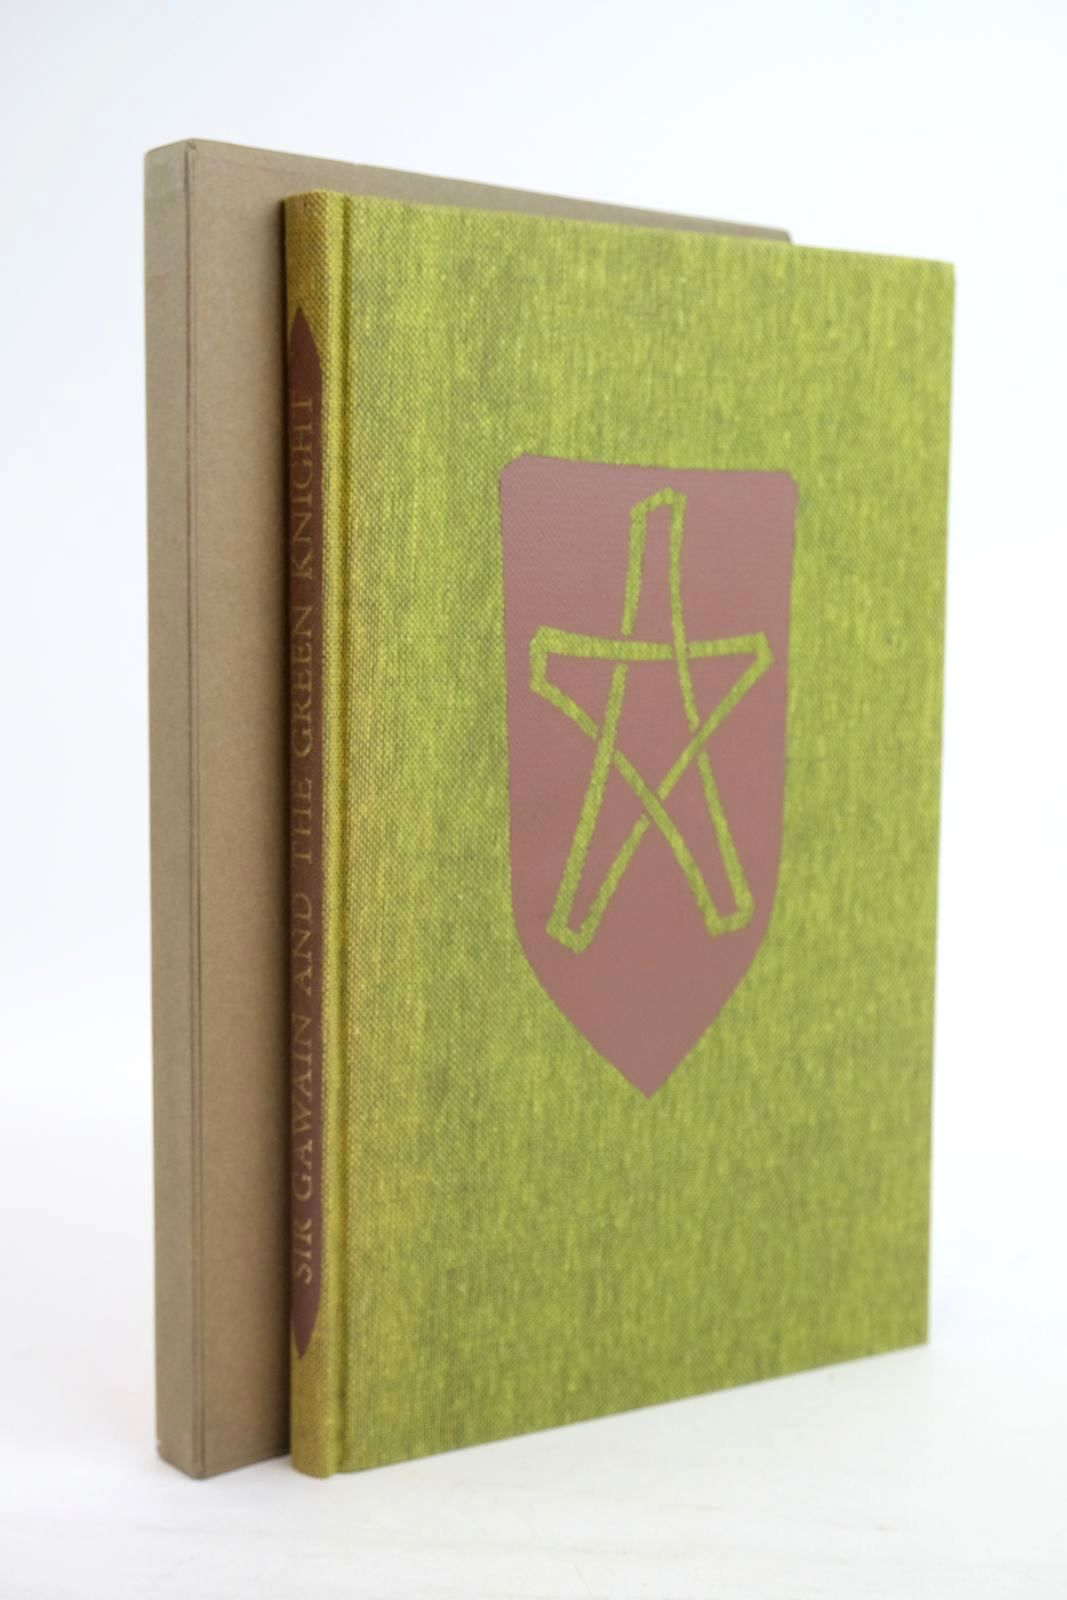 Photo of SIR GAWAIN AND THE GREEN KNIGHT written by Harrison, Keith illustrated by Burnett, Virgil published by Folio Society (STOCK CODE: 1320128)  for sale by Stella & Rose's Books